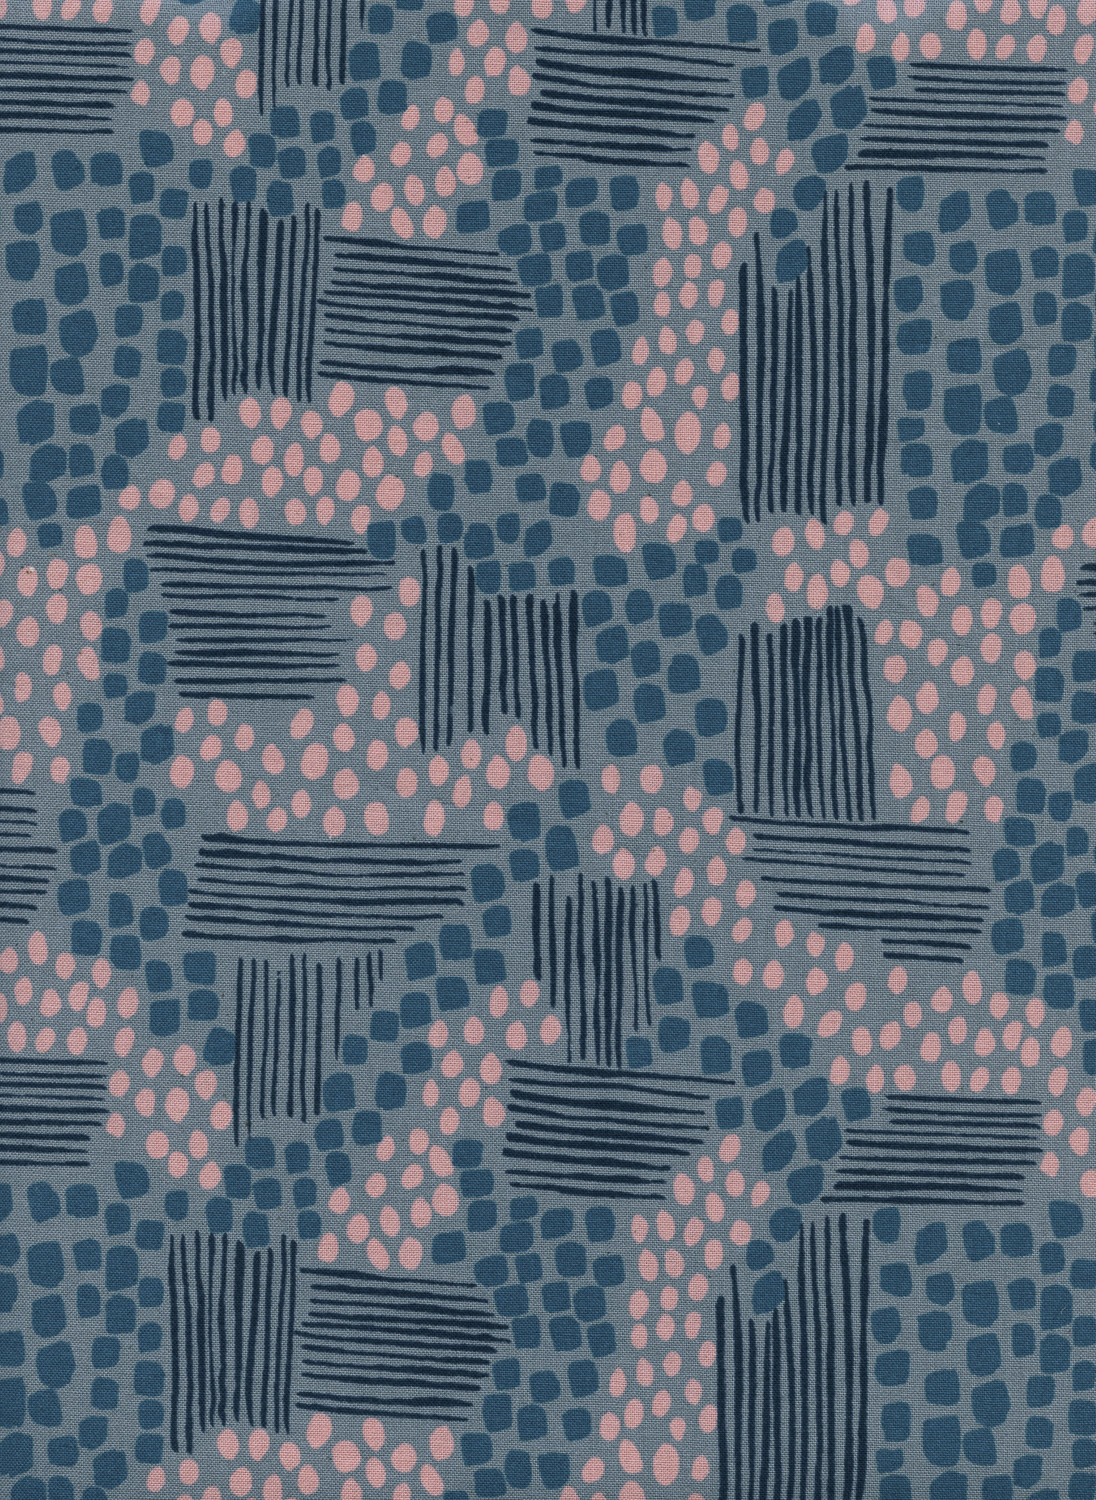 Aeriel View in Stone by Jen Hewitt from the Imagined Landscapes collection for Cotton and Steel #J9010-001